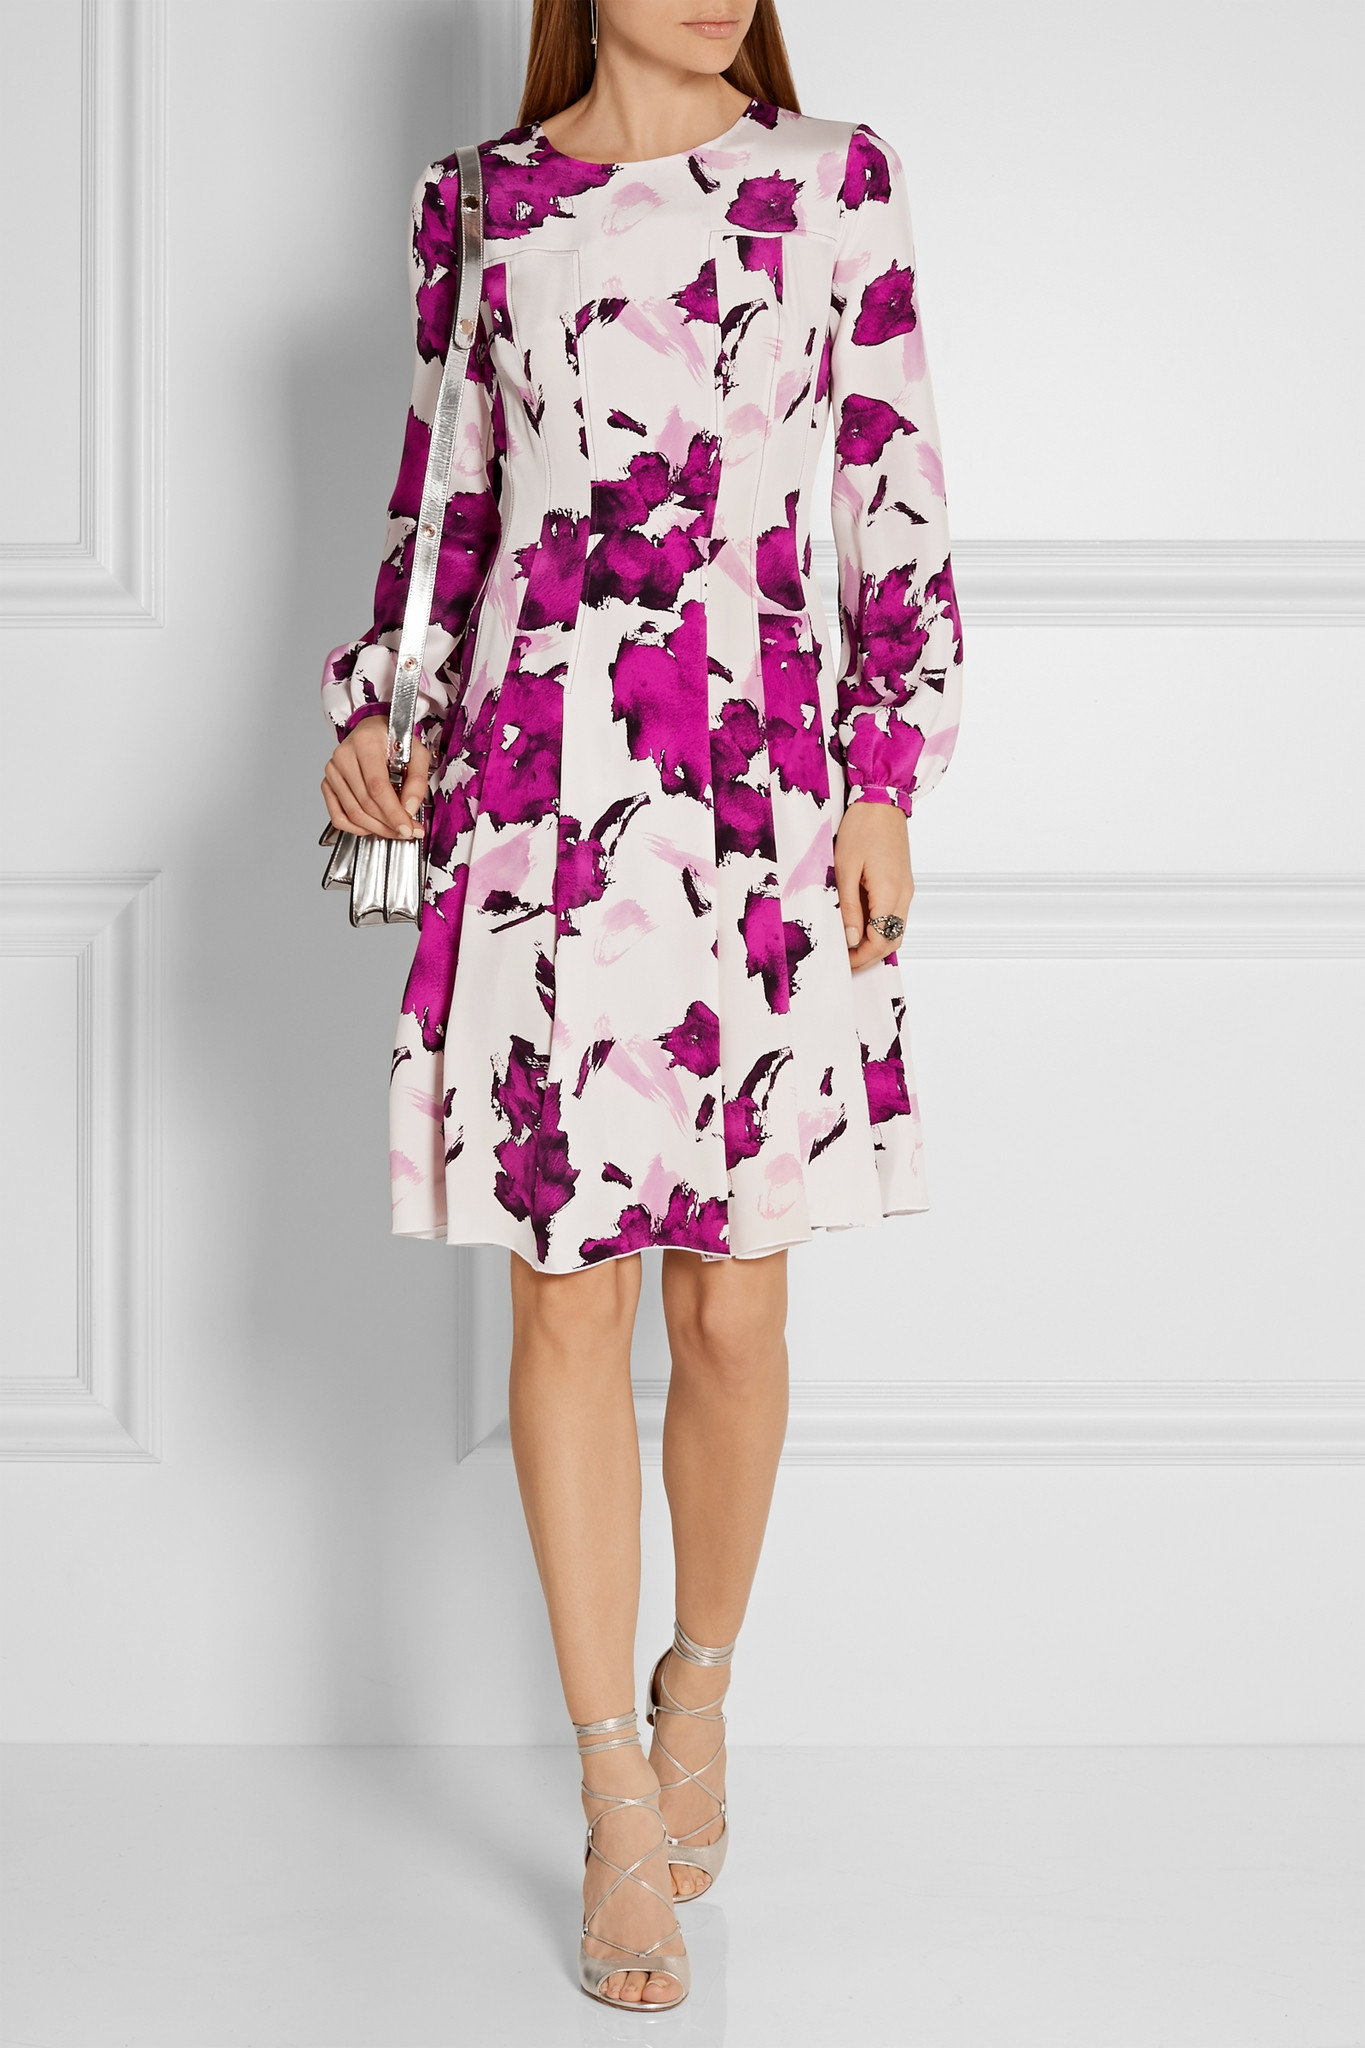 floral-print pleated dress - White Oscar De La Renta K0N2O